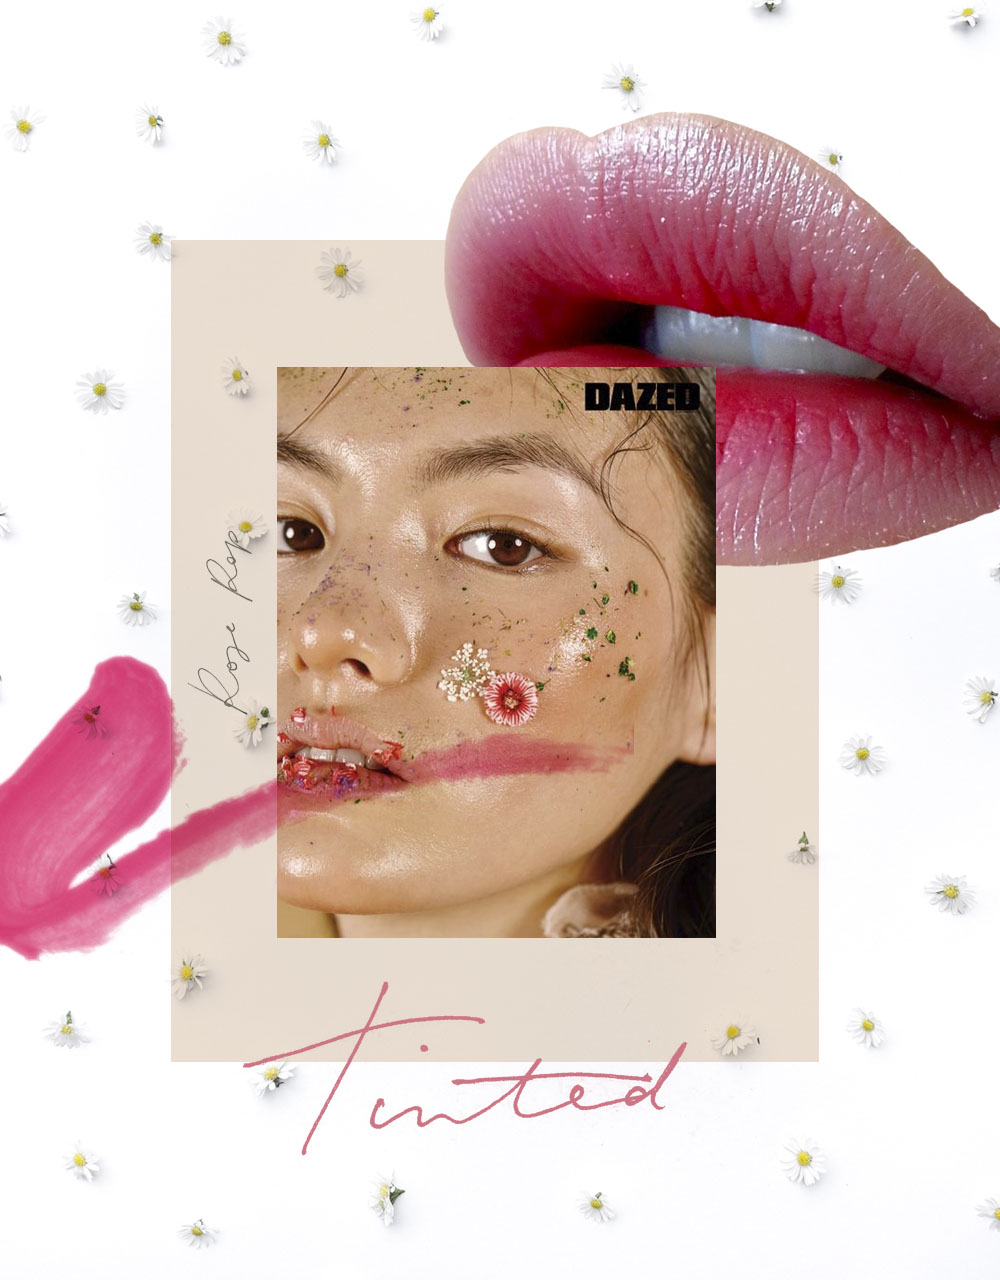 Collage using all of my Images except Model Image by Dazed, LipS UNKNOWN (just used as reference)